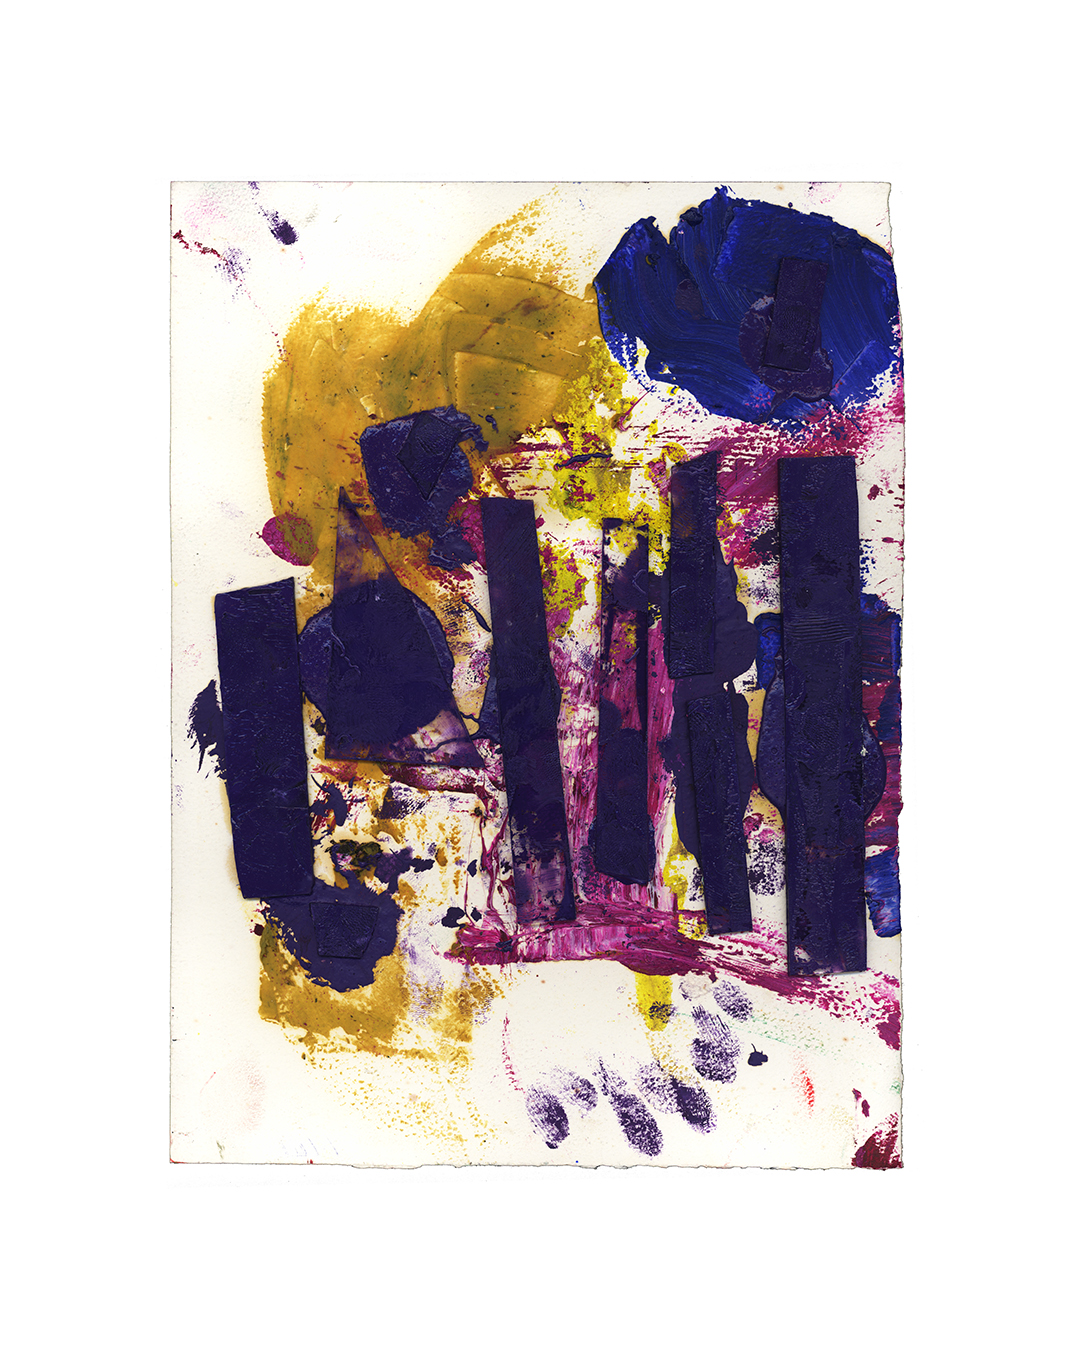 Piet Dieleman, untitled, 2020, painting, epoxy filler, glass, oil, tempera, paint, laser woodprint on paper, 380 x 280 mm, €930